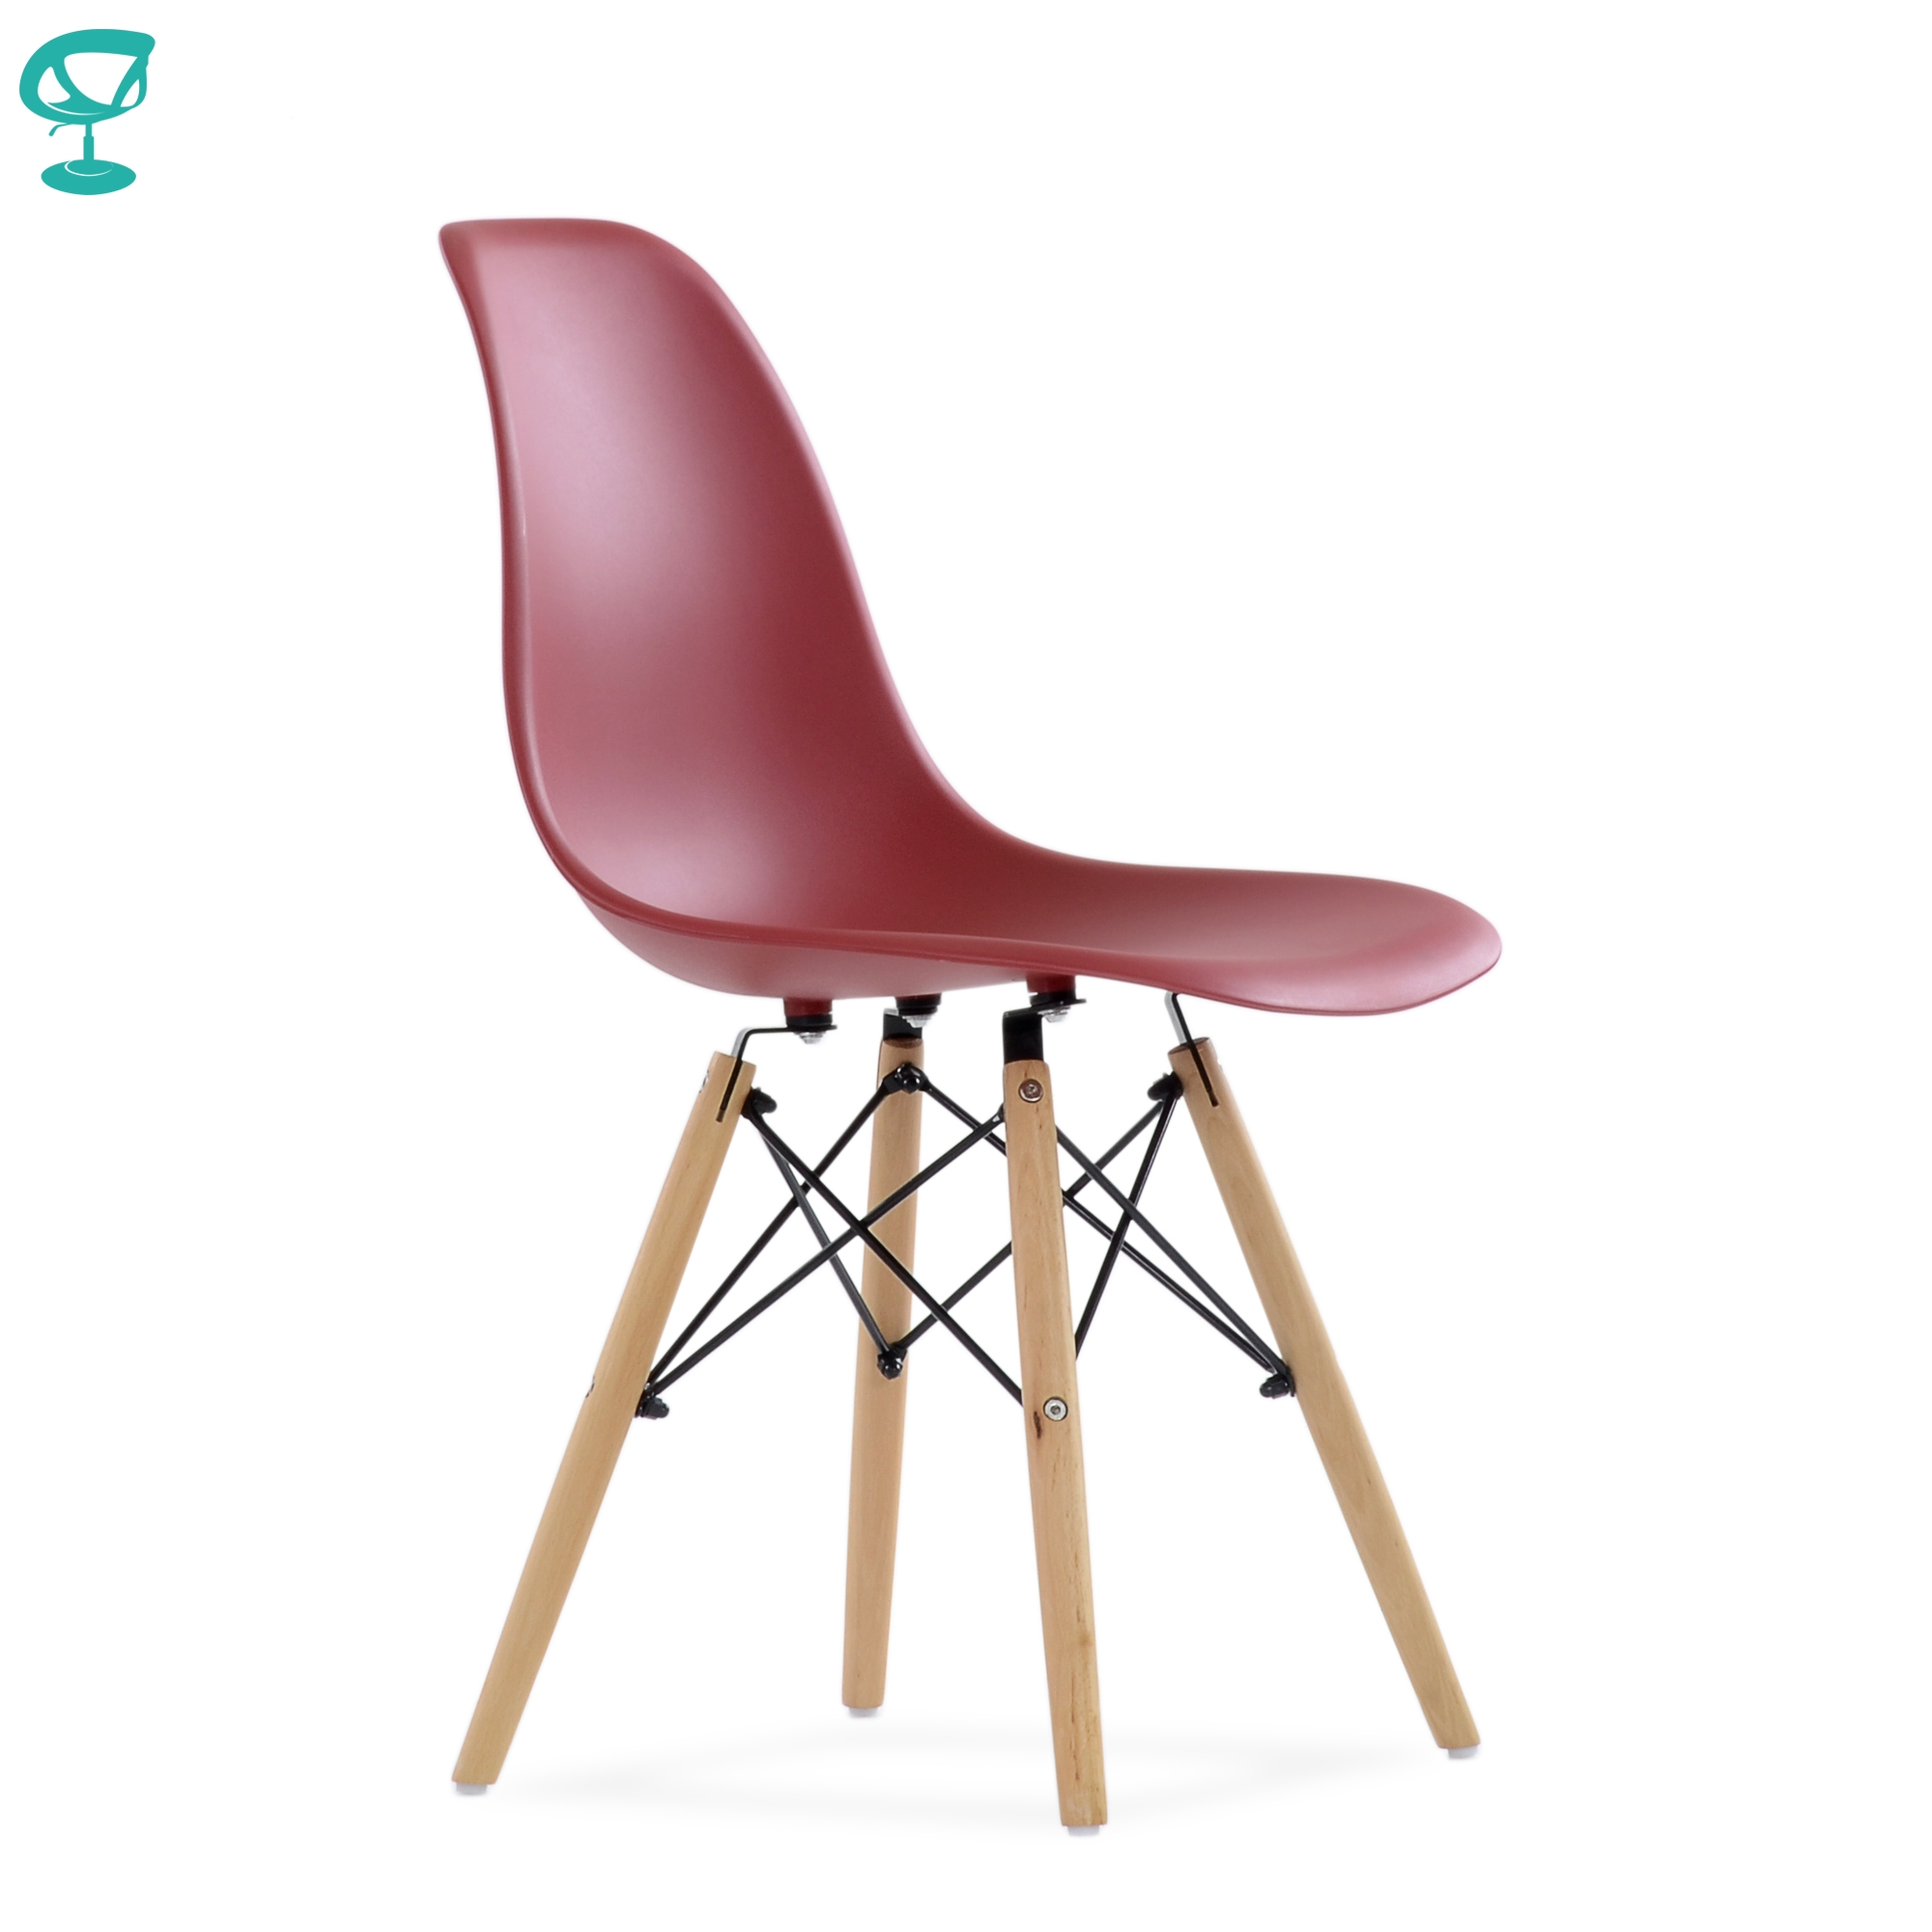 95758 Barneo N-12 Plastic Wood Kitchen Breakfast Interior Stool Chair Kitchen Furniture Bordeaux Color Free Shipping In Russia